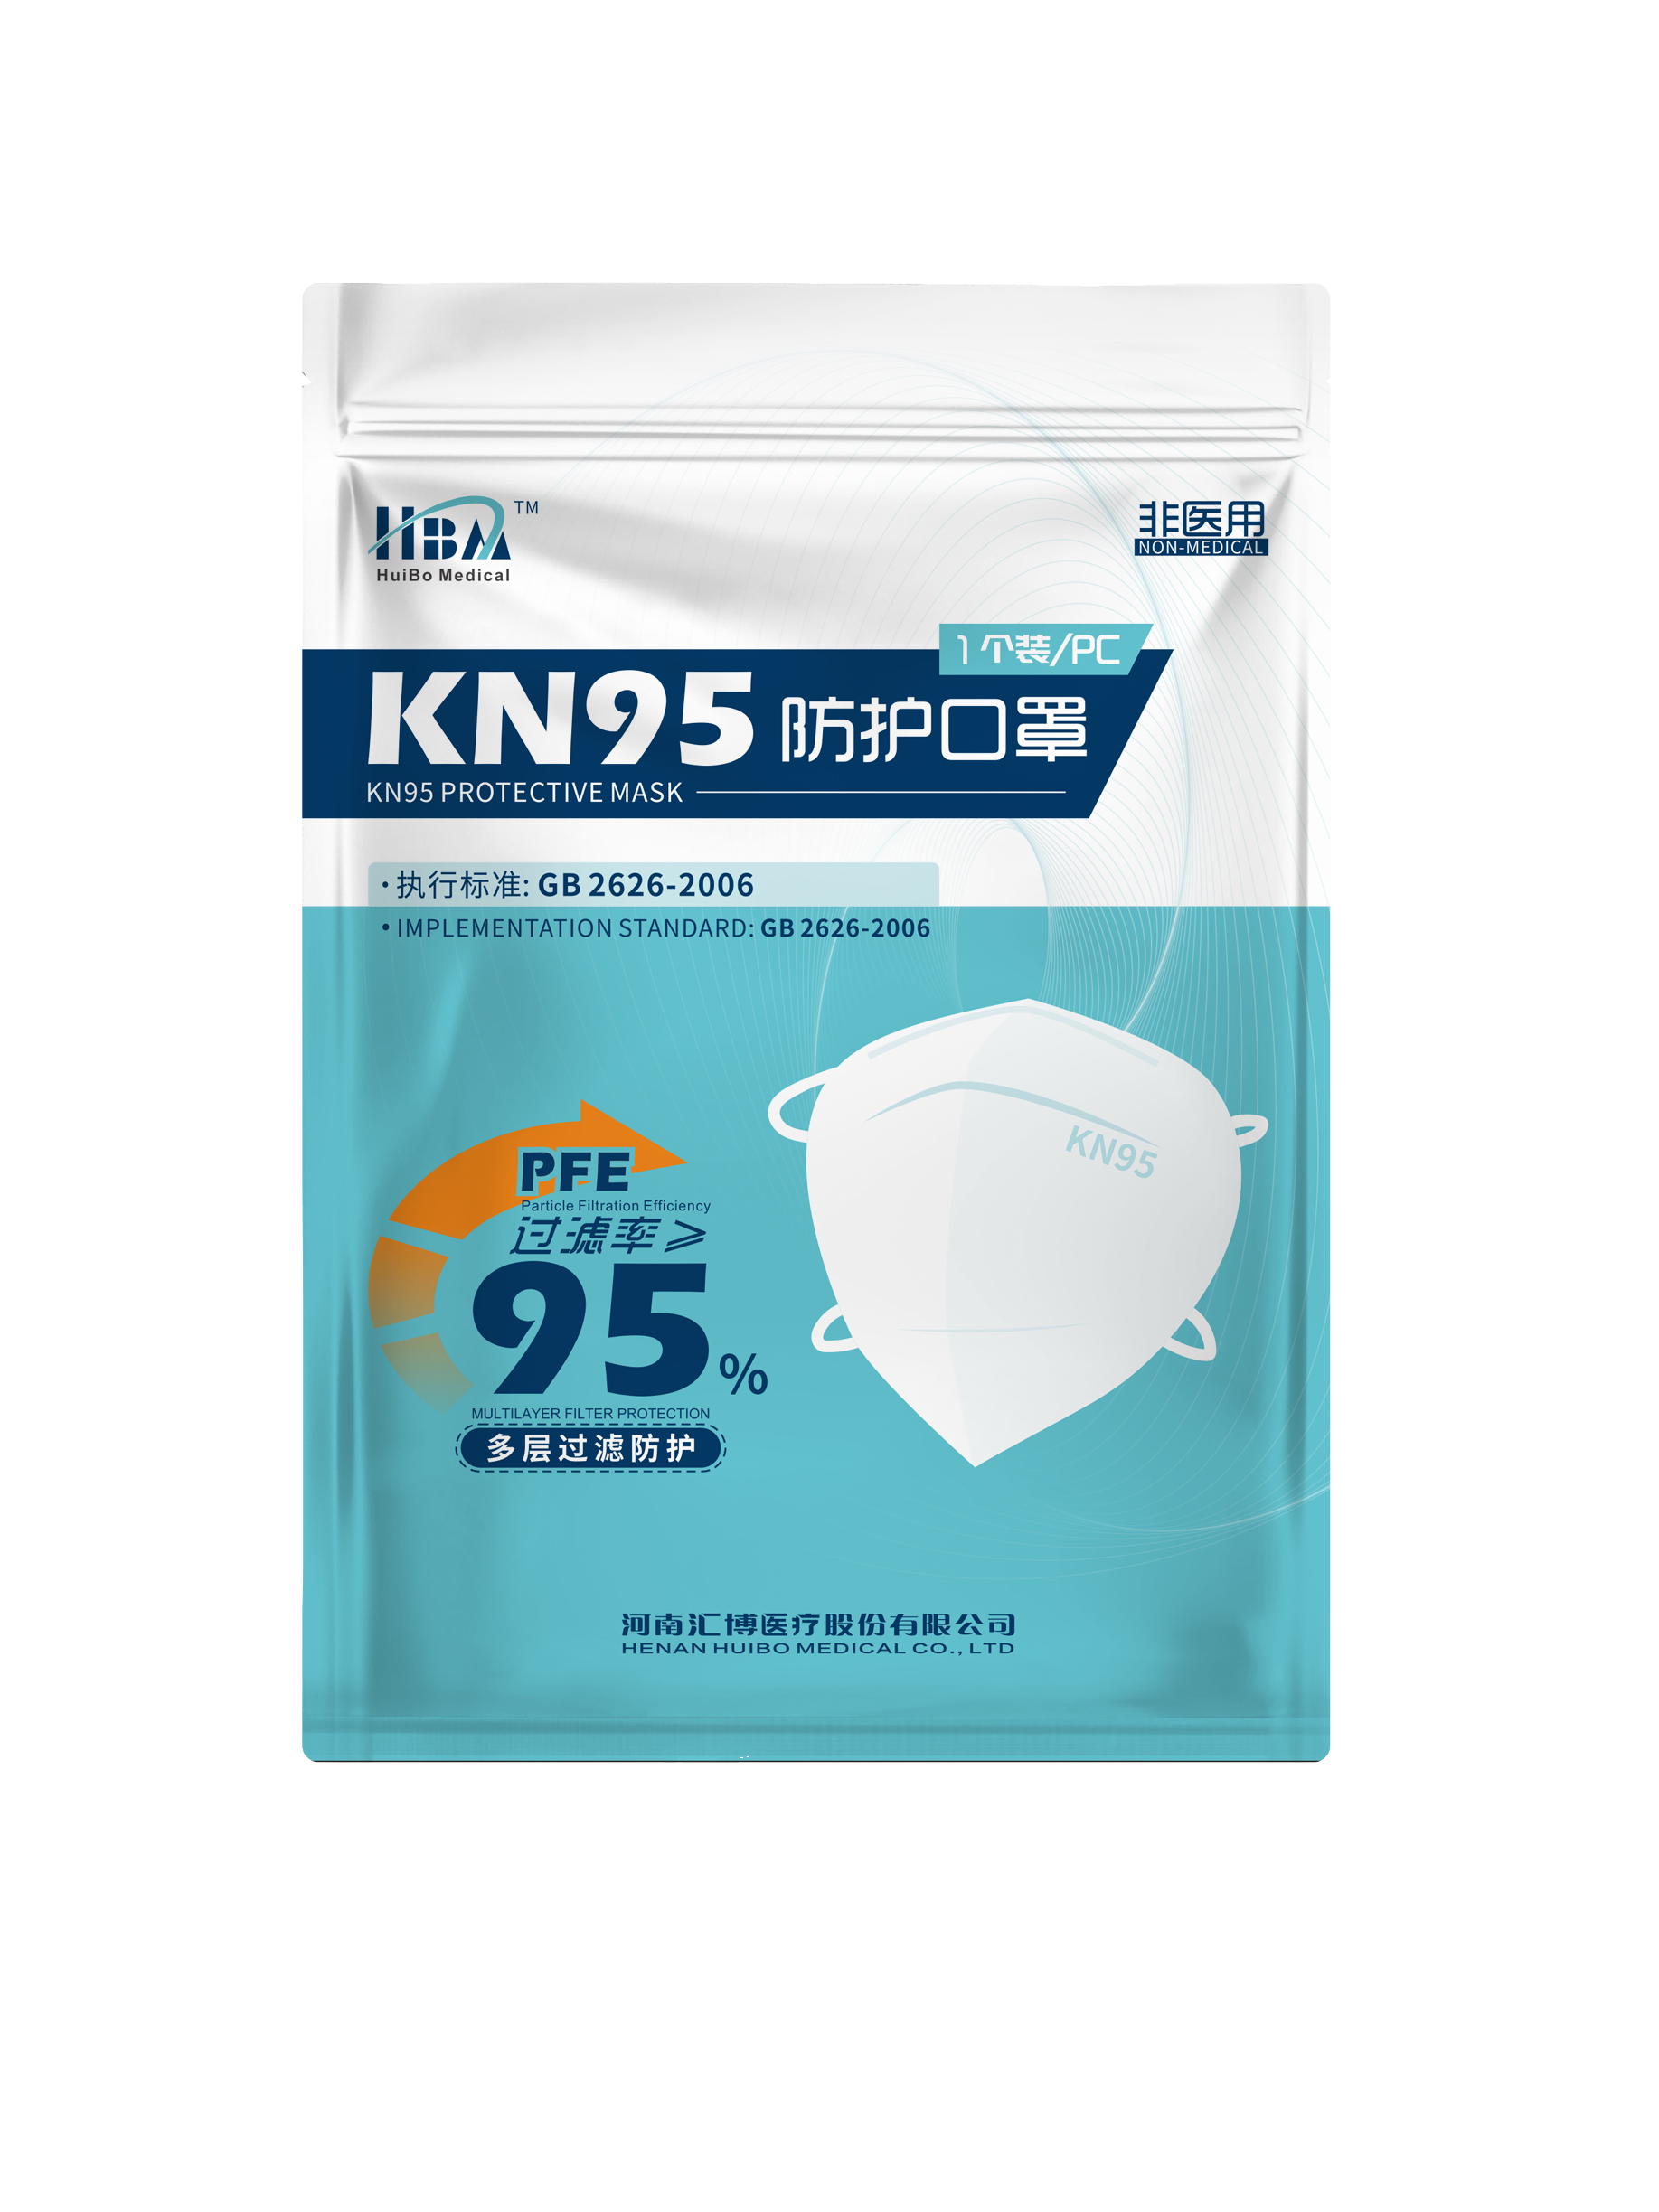 Import KN95 face mask, FFP2 mask, 5 layer protective mask from China